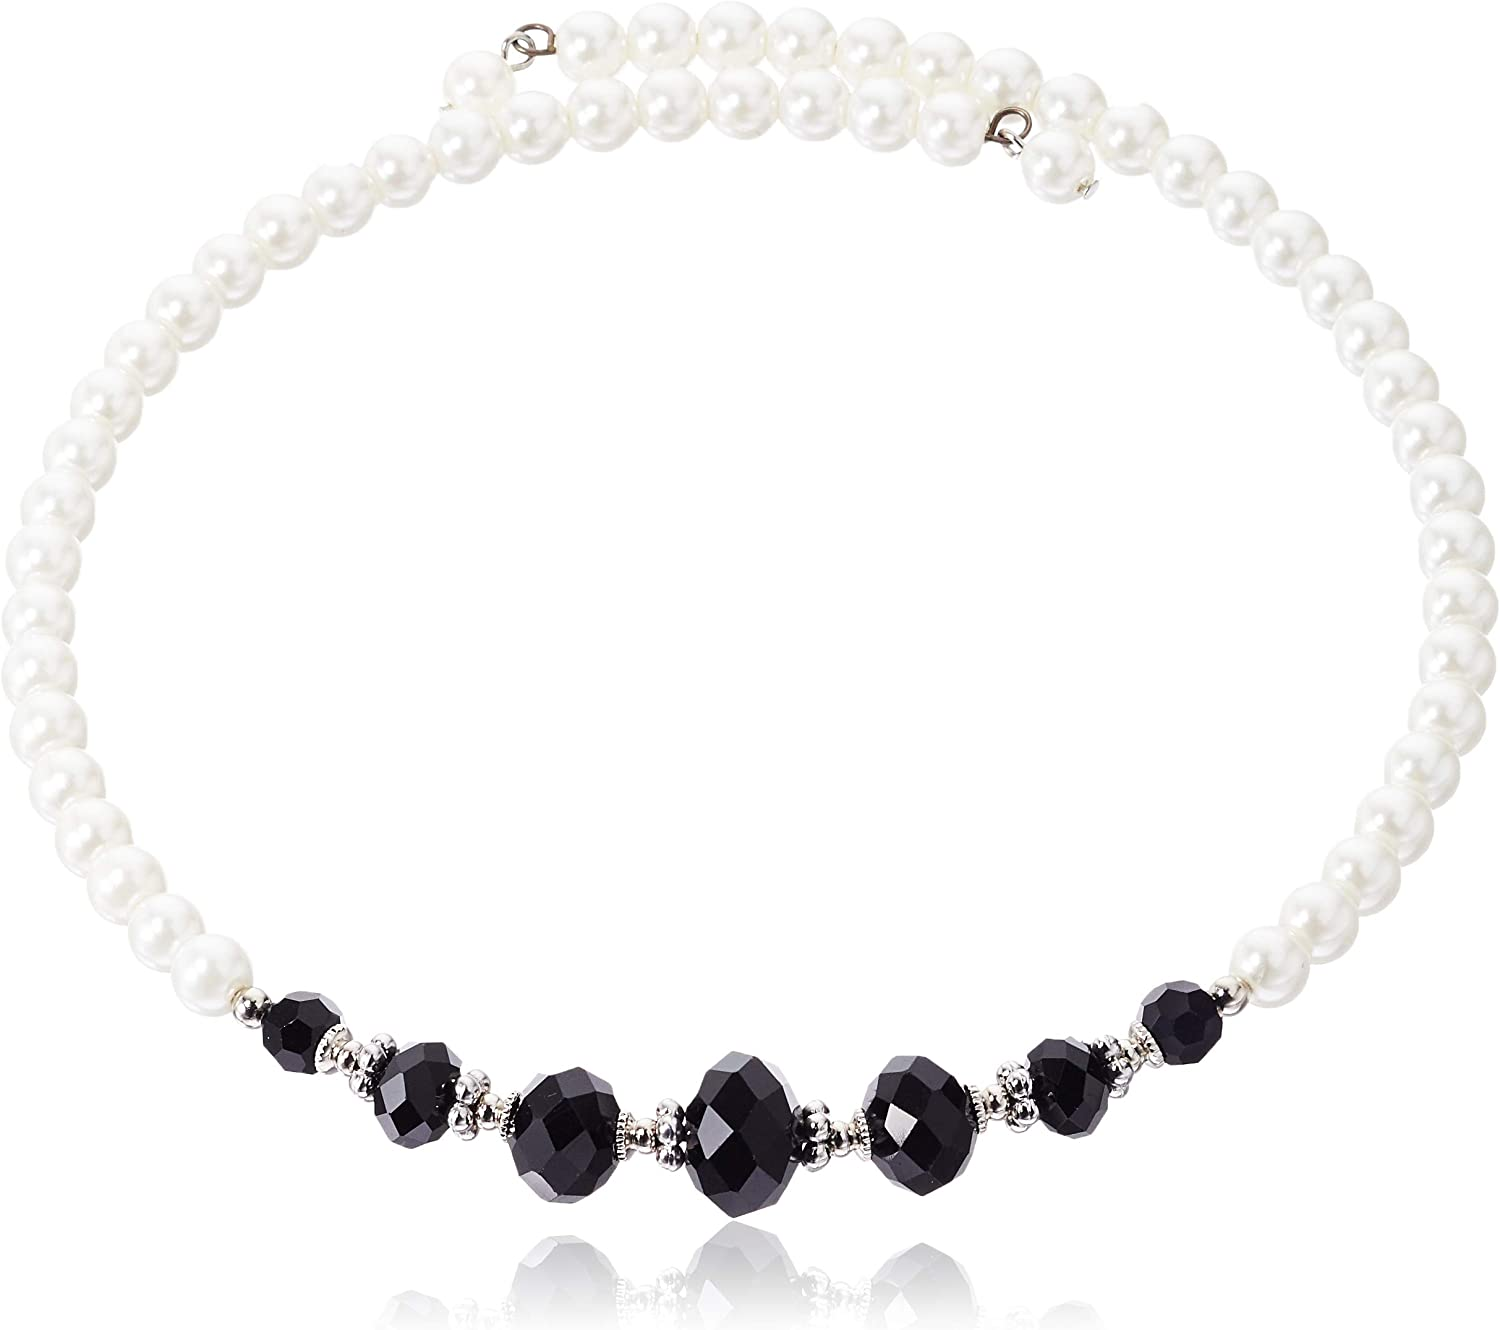 1928 Jewelry Simulated Pearl and Black Crystal Coil Choker Necklace 15